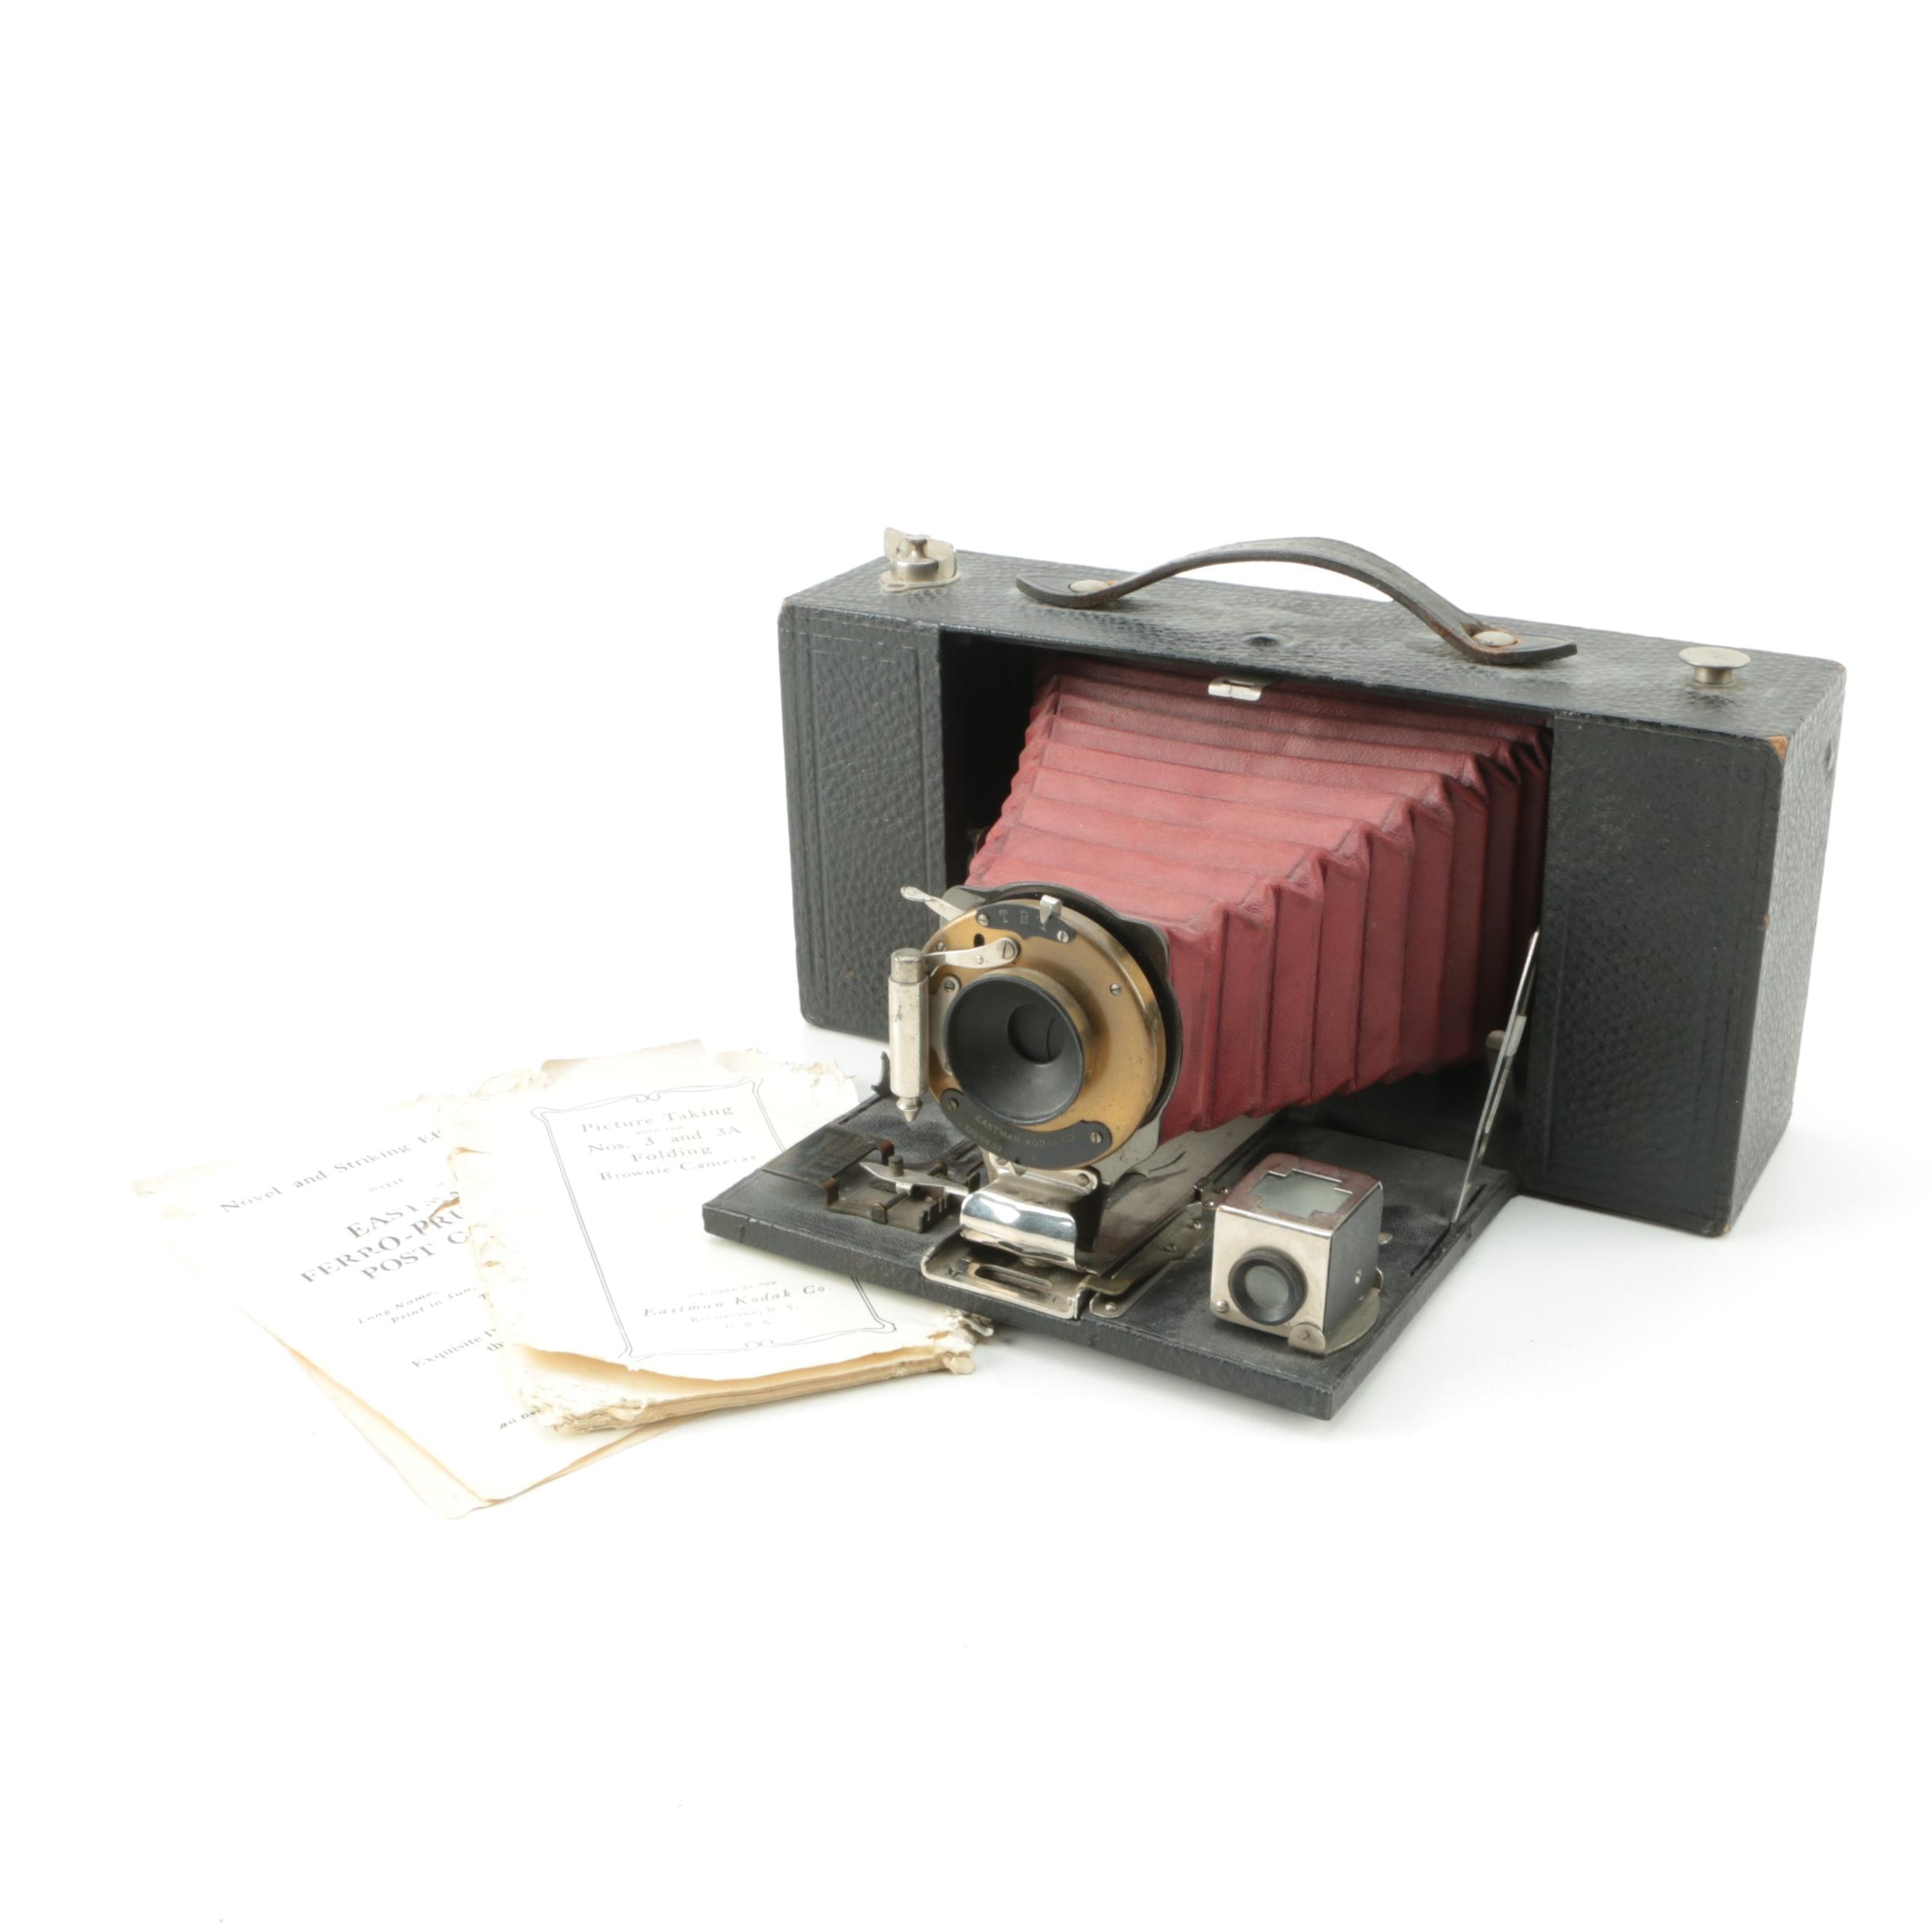 Vintage Eastman Kodak NO. 3-A Folding Brownie Still Camera